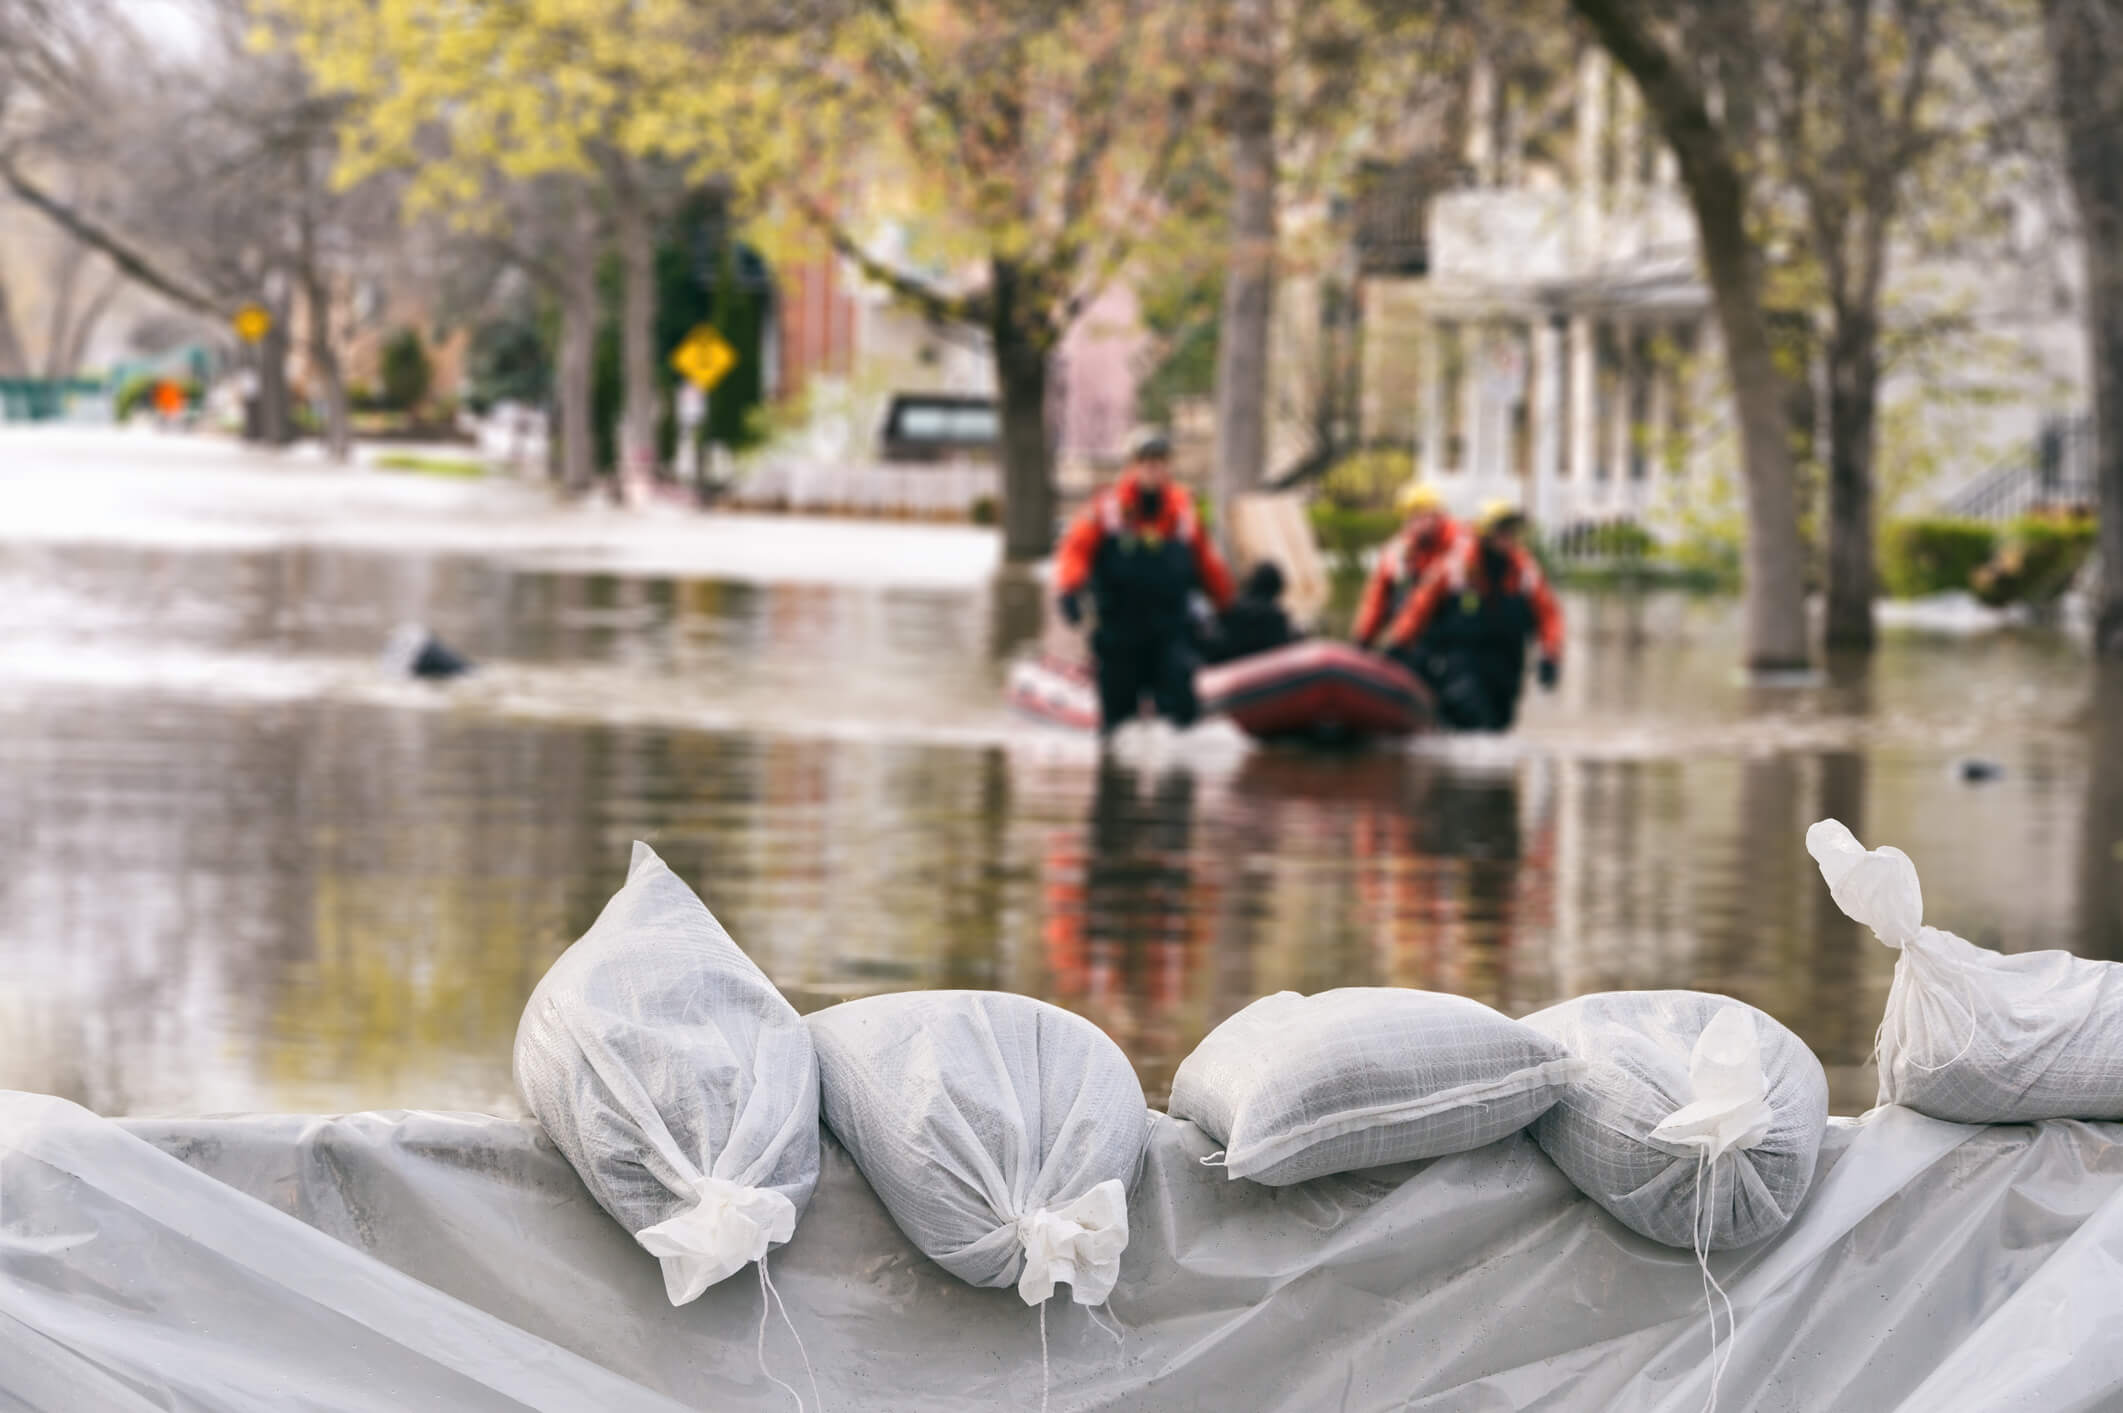 Summertime Natural Disasters: Be Prepared